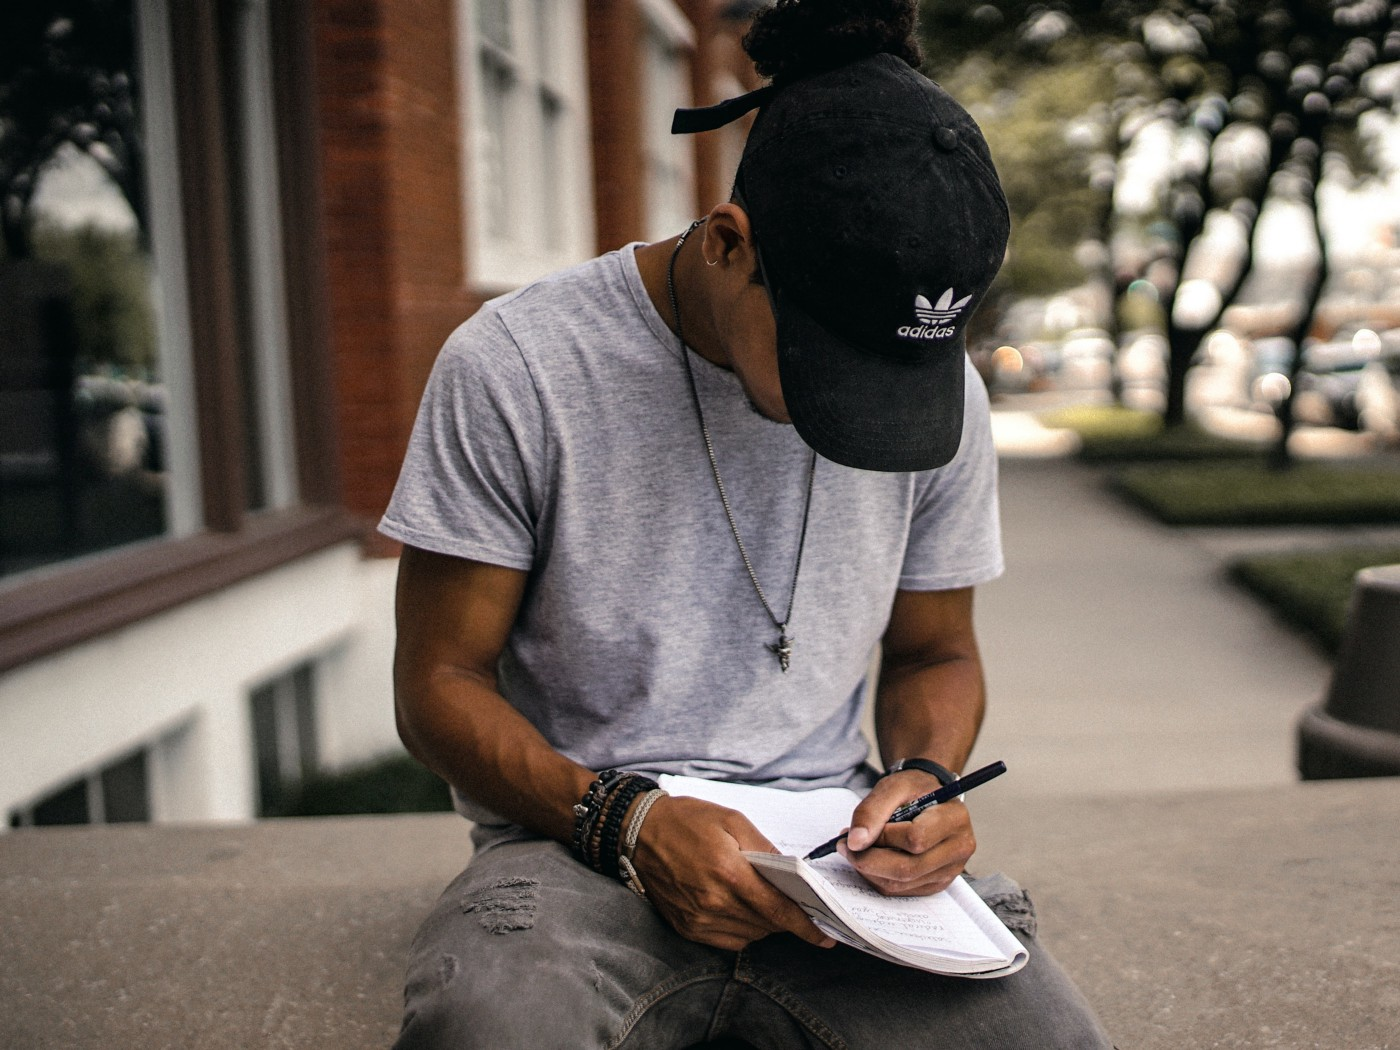 Black man sitting down writing in a notebook